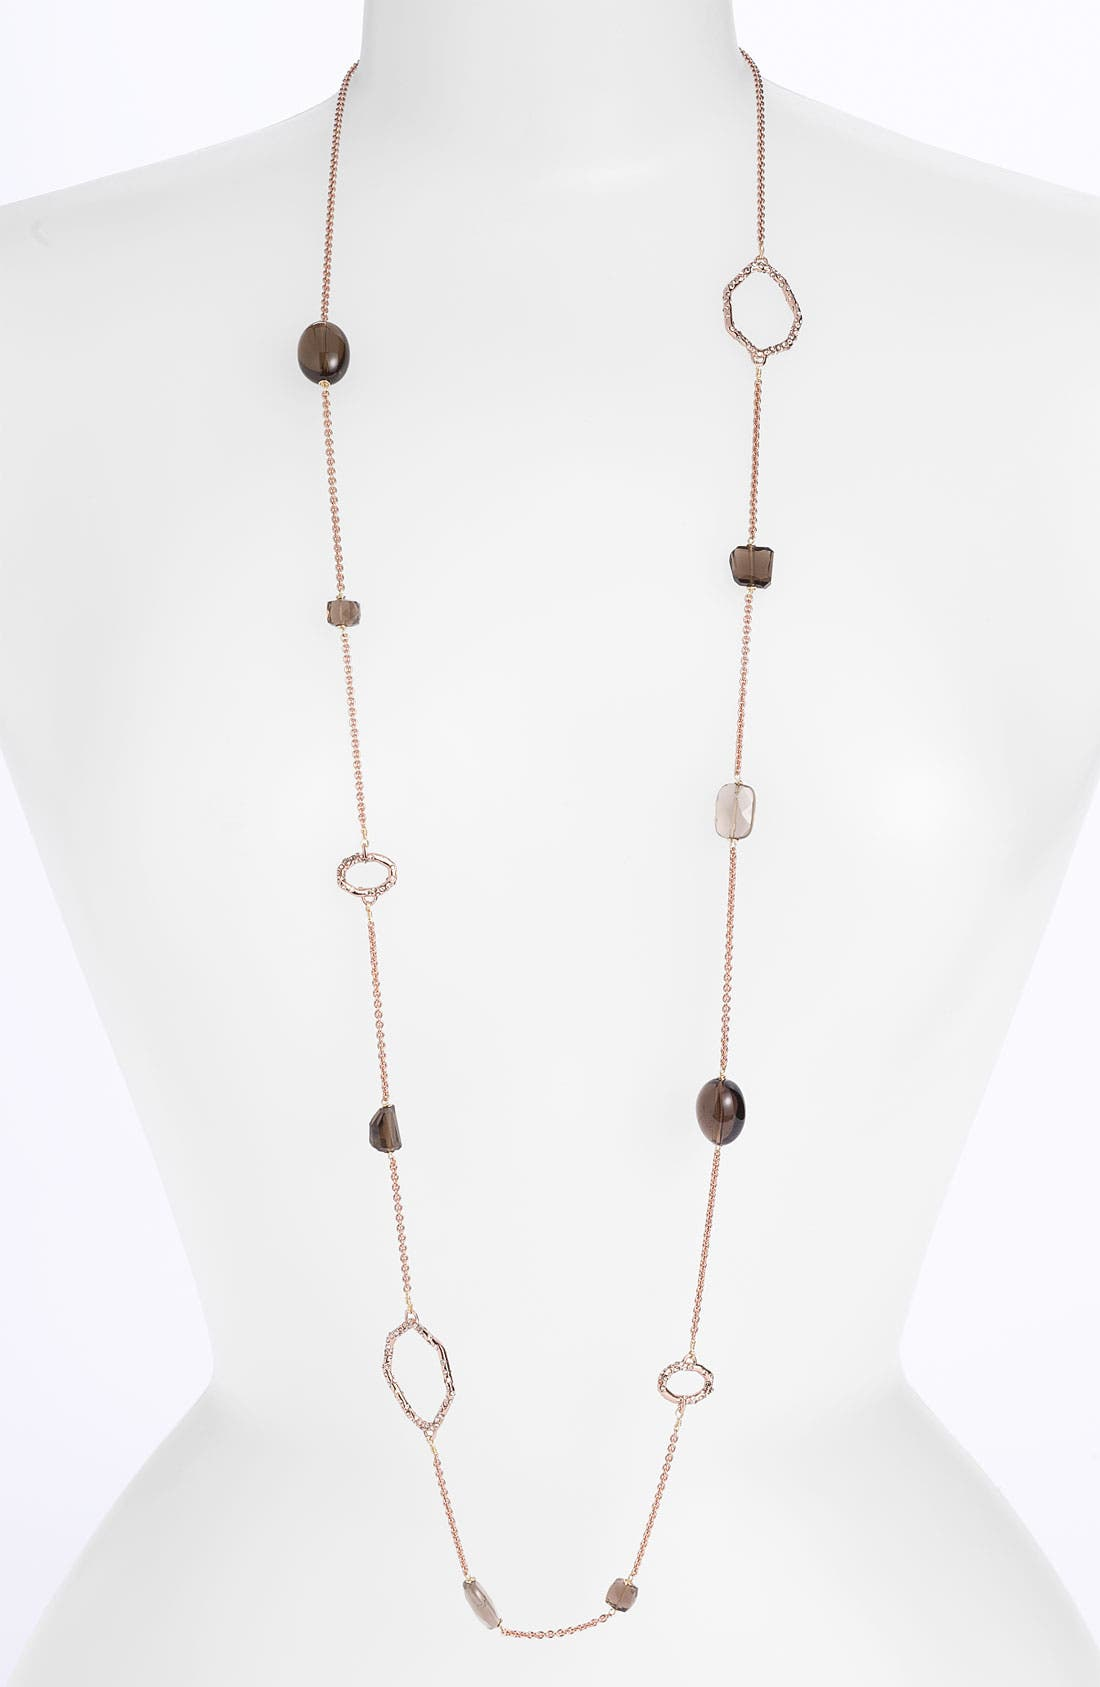 Alternate Image 1 Selected - Alexis Bittar 'Delano' Long Station Necklace (Nordstrom Exclusive)